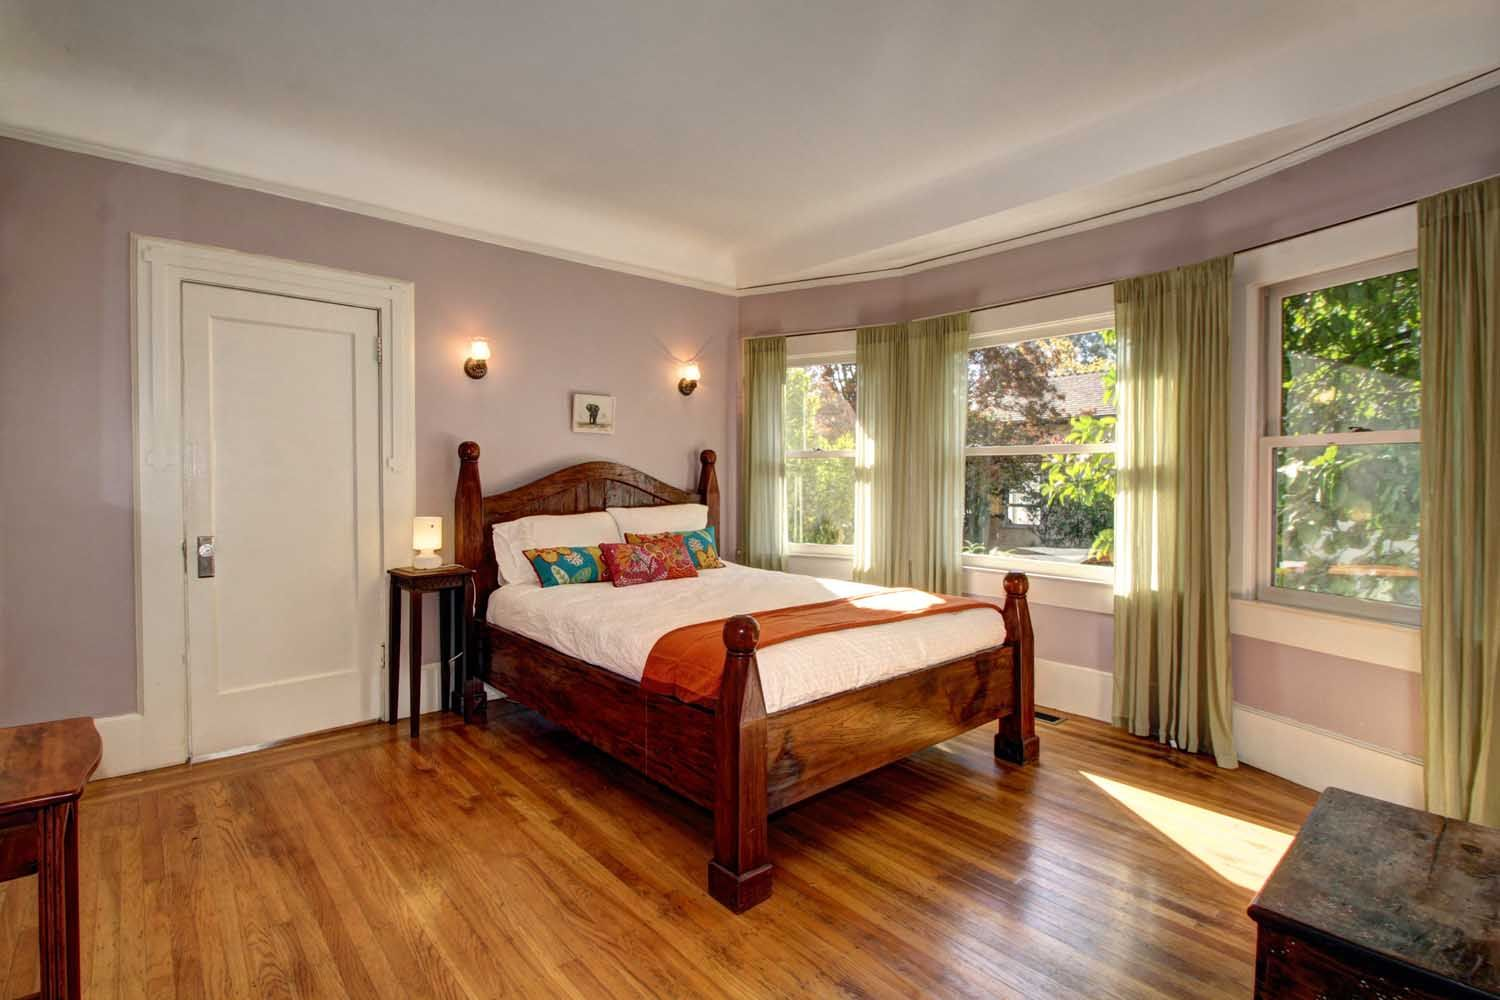 First-floor bedroom in this 1915 Craftsman boasts hardwood floors, detailed carving and lots of windows. #HomesEastSacramento